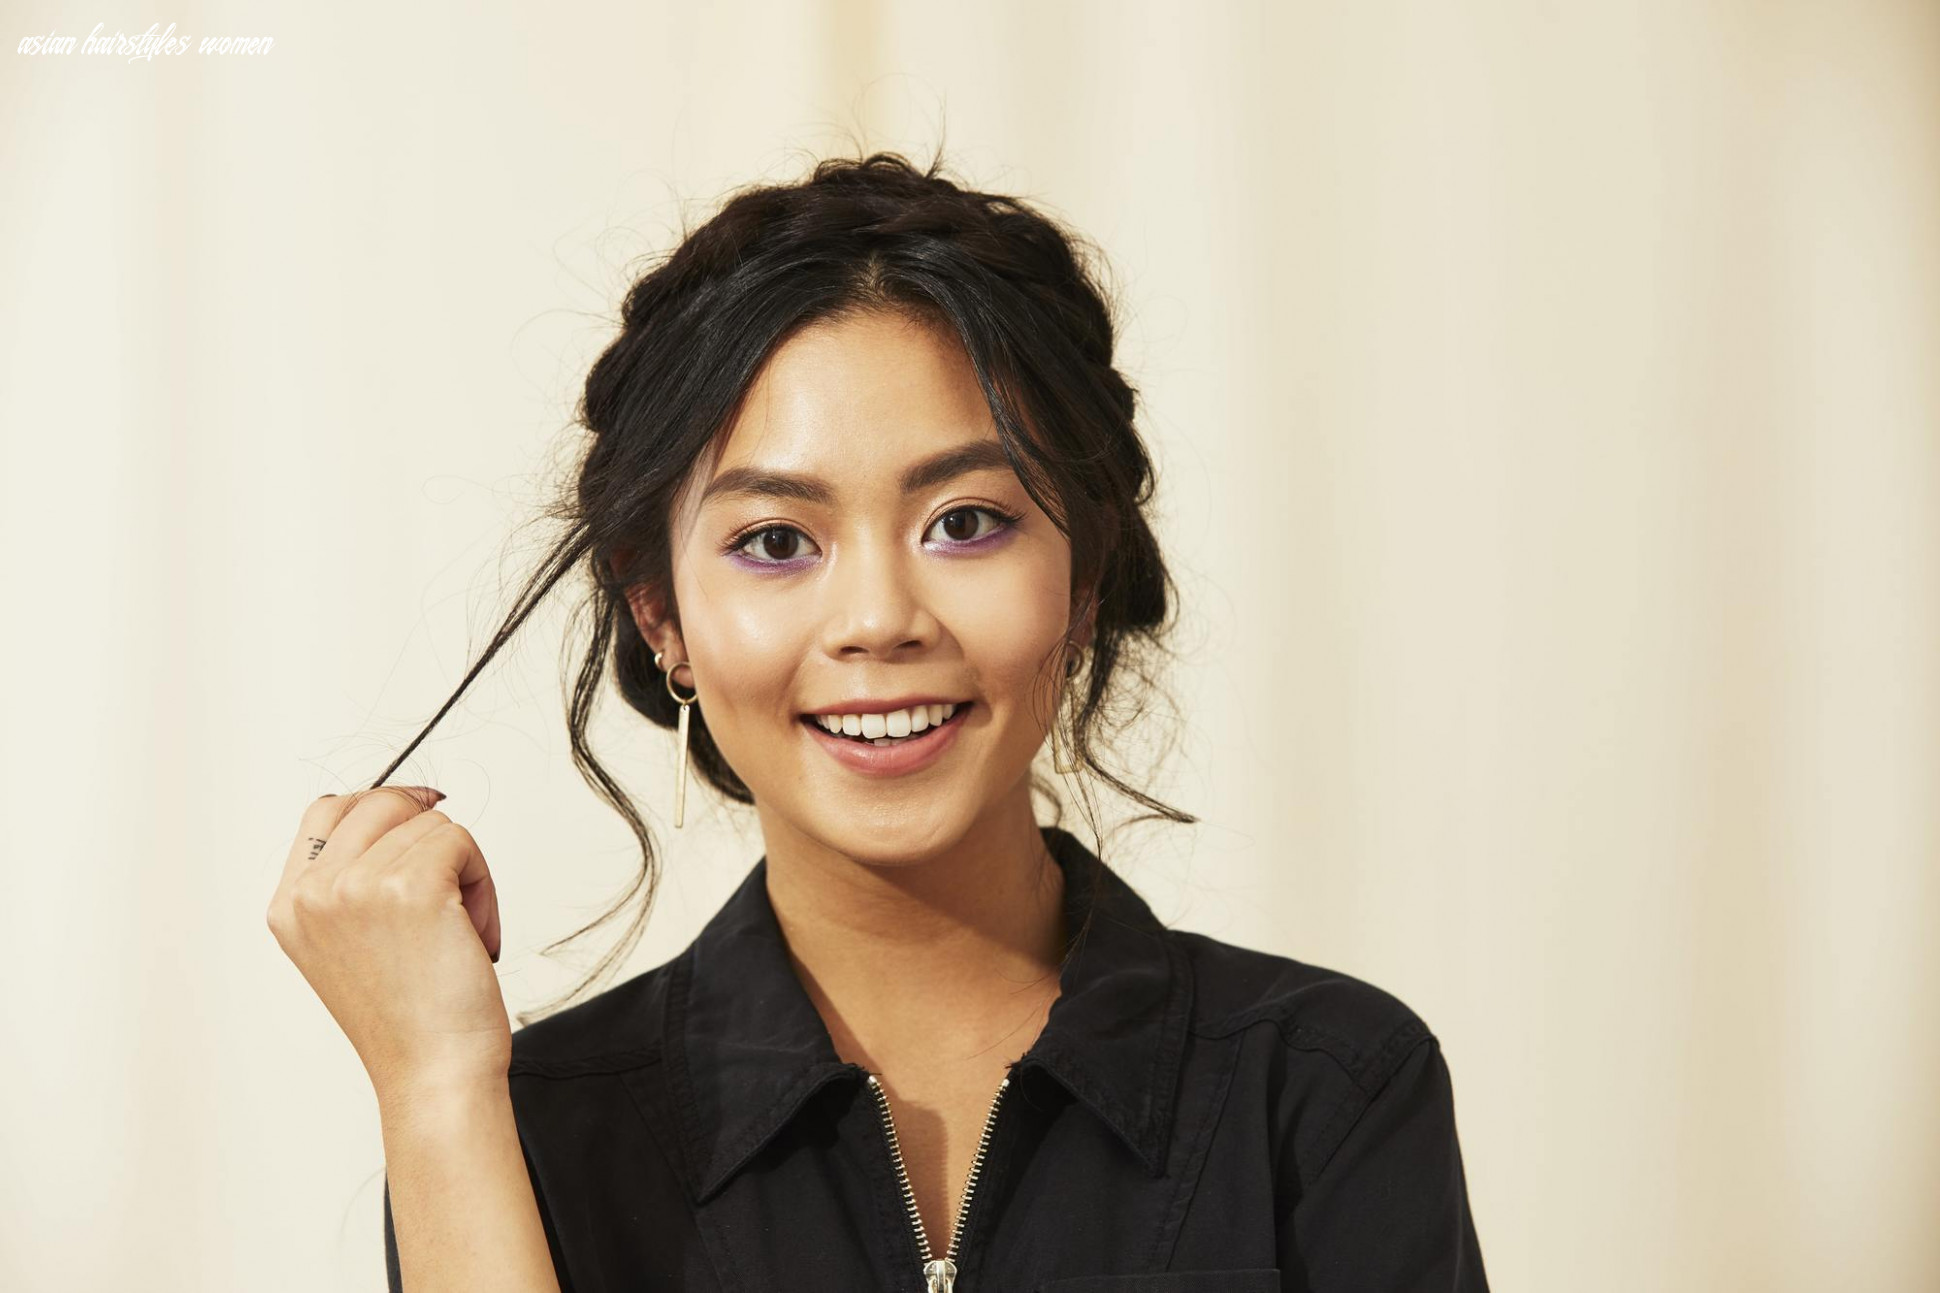 Asian Hairstyles for Women: 9 Trendy and Easy Looks to Try